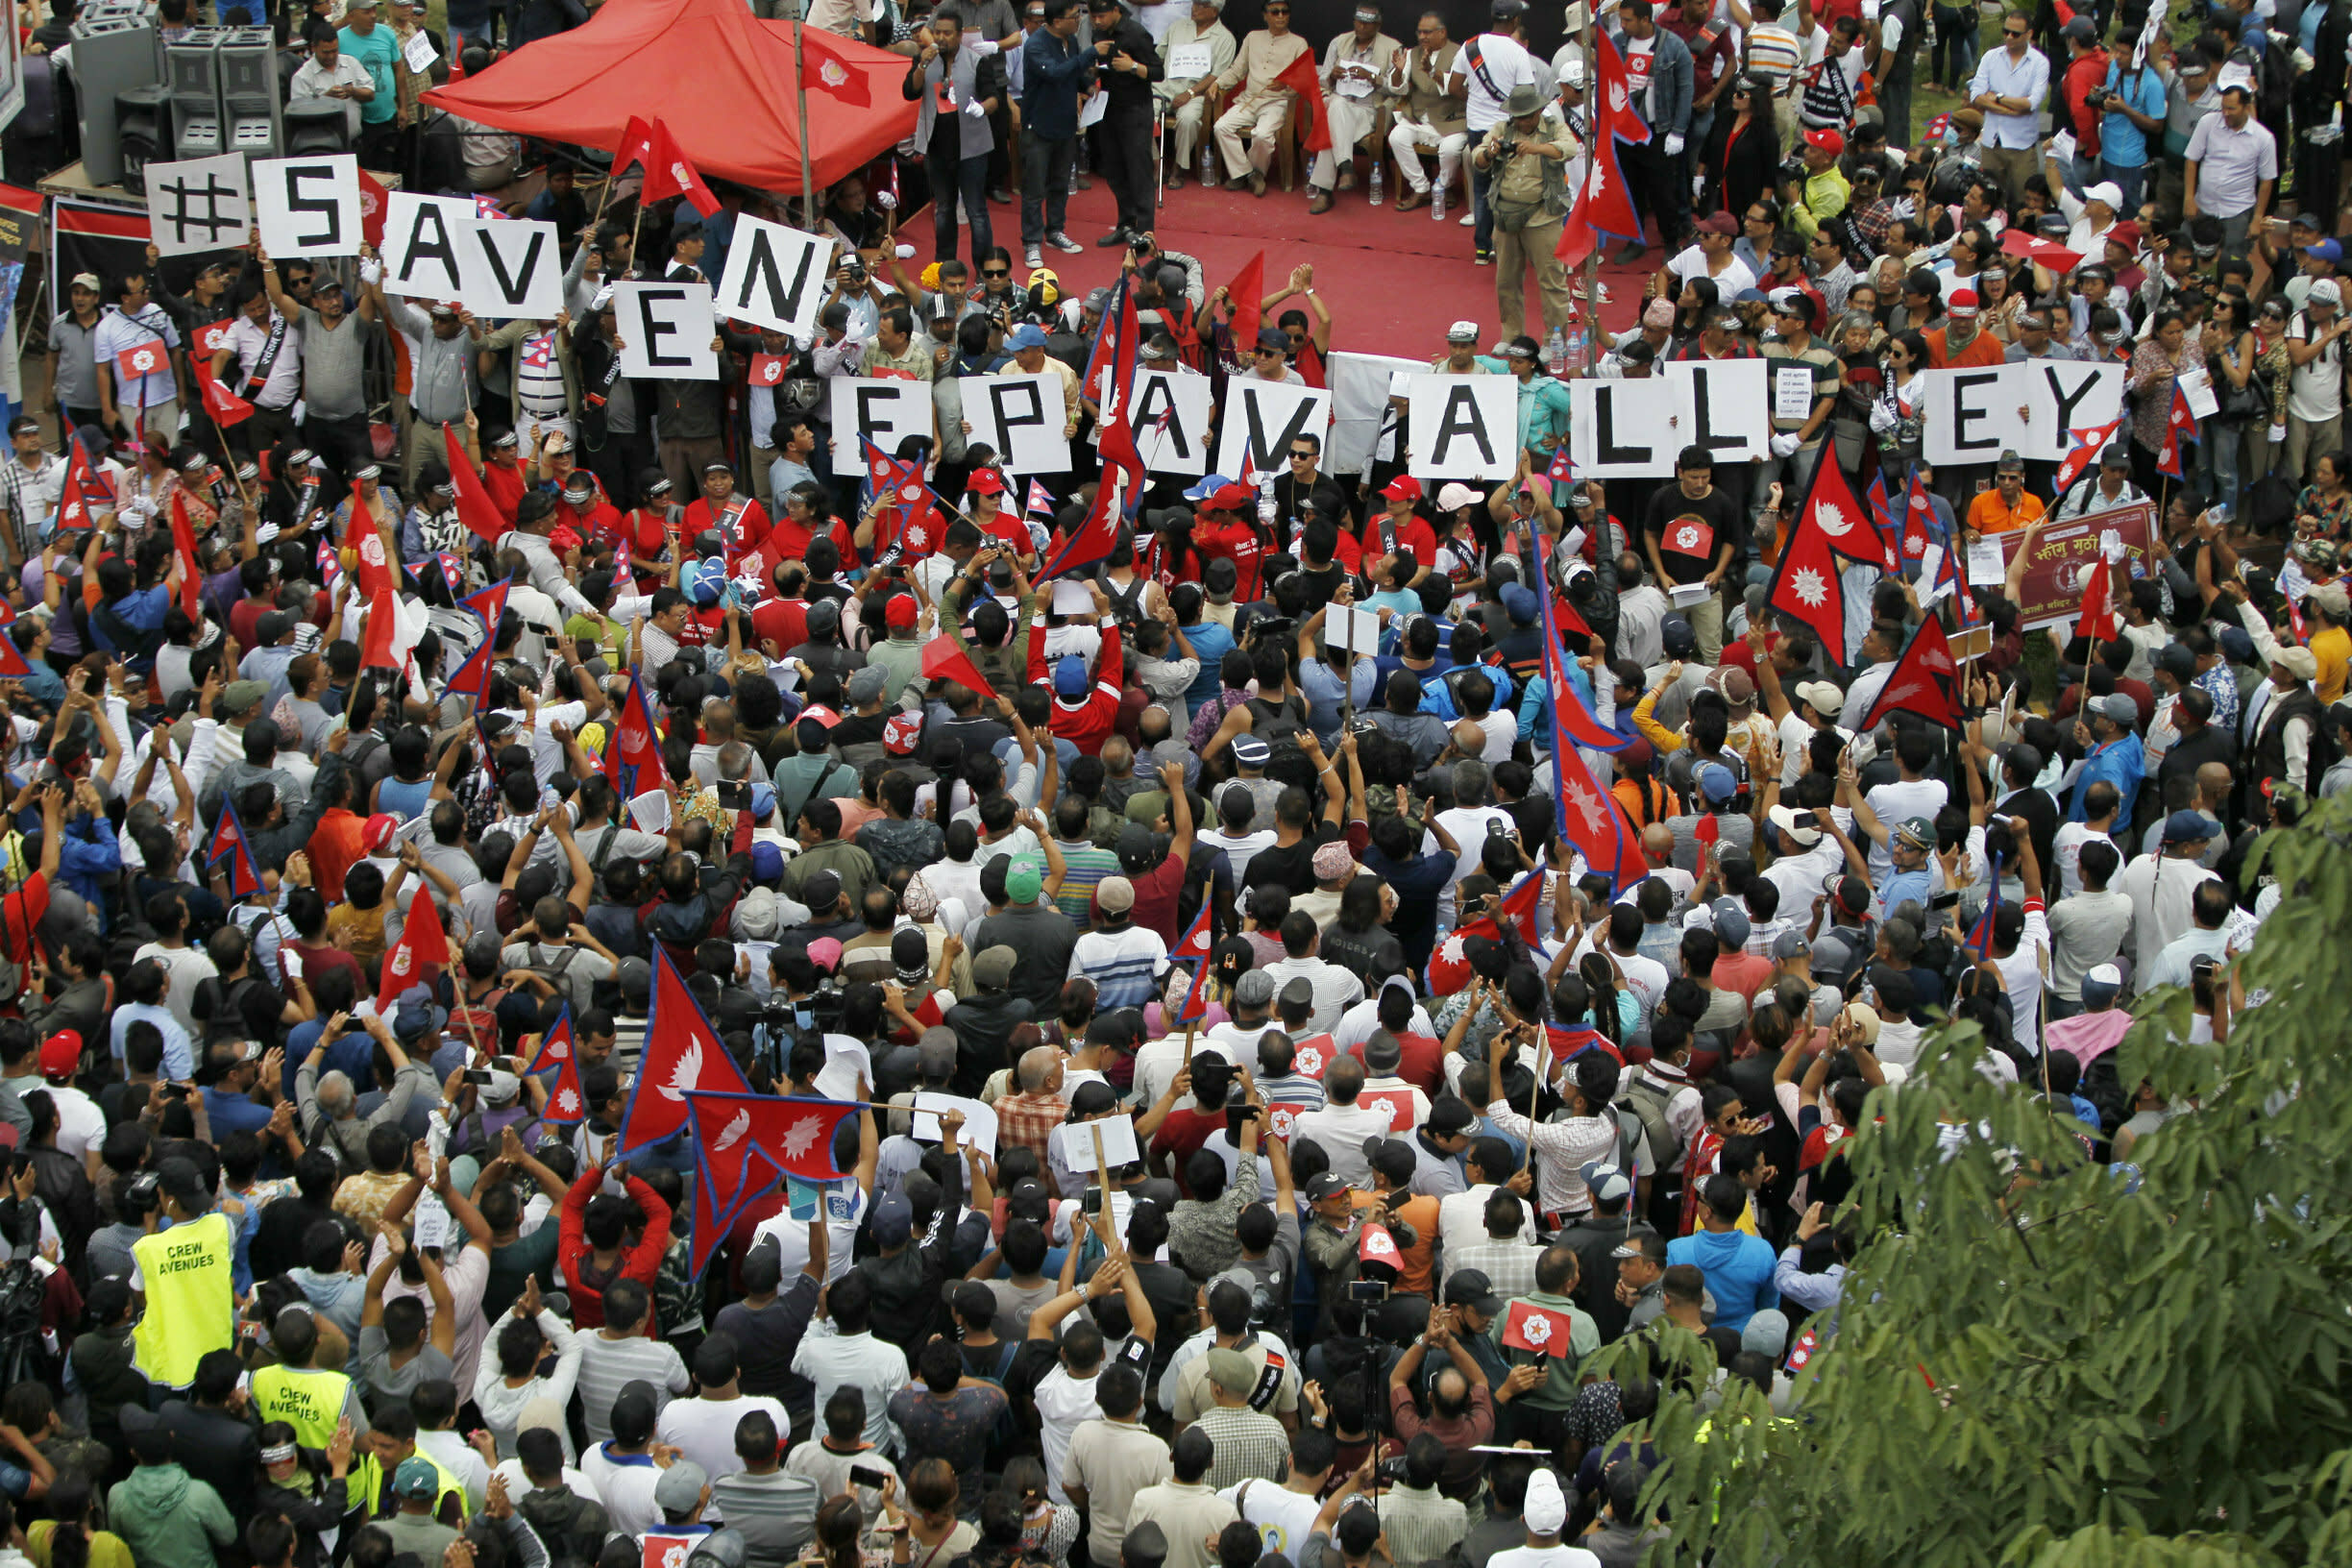 Nepalese Newar community people gather during a protest against government in Kathmandu, Nepal, Wednesday, June 19, 2019. Thousands of people protested in the Nepalese capital to protest a Bill that would give government control over community and religious trusts. Protesters demanded the government scrap the proposed Bill to protect these trusts that hold religious ceremonies and festivals. (AP Photo/Niranjan Shrestha)